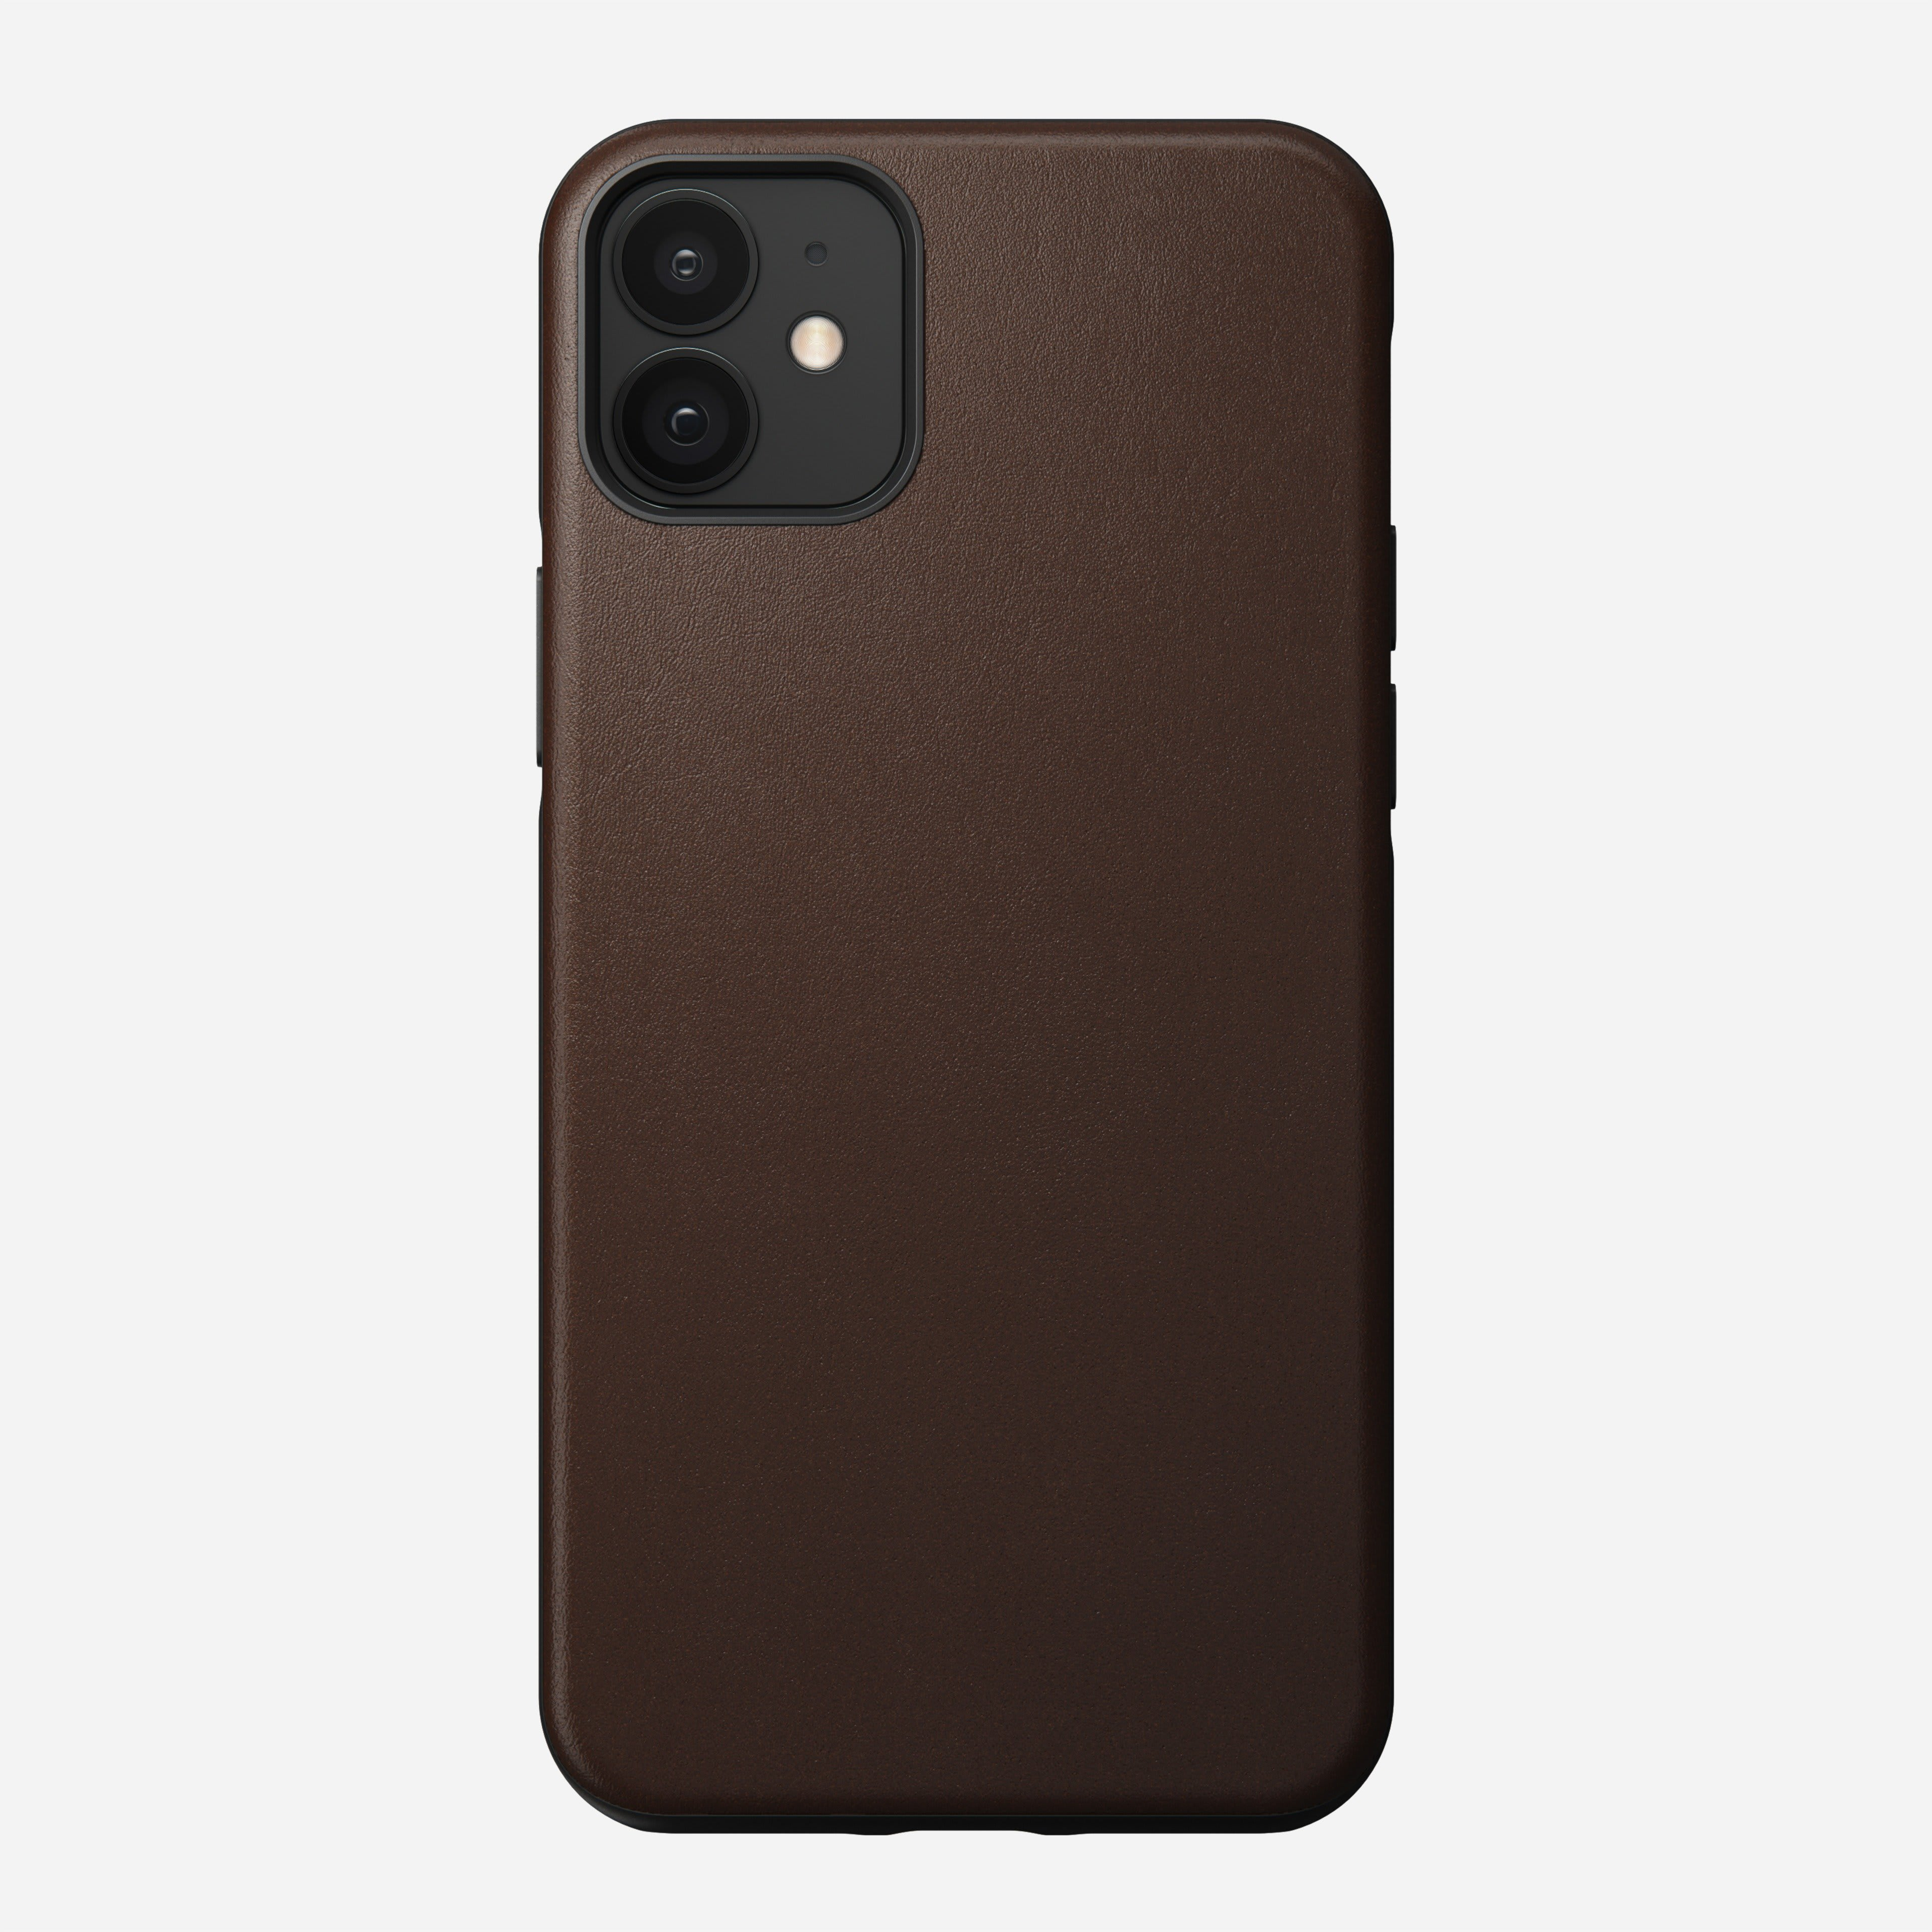 Rugged case horween leather rustic brown iphone 12